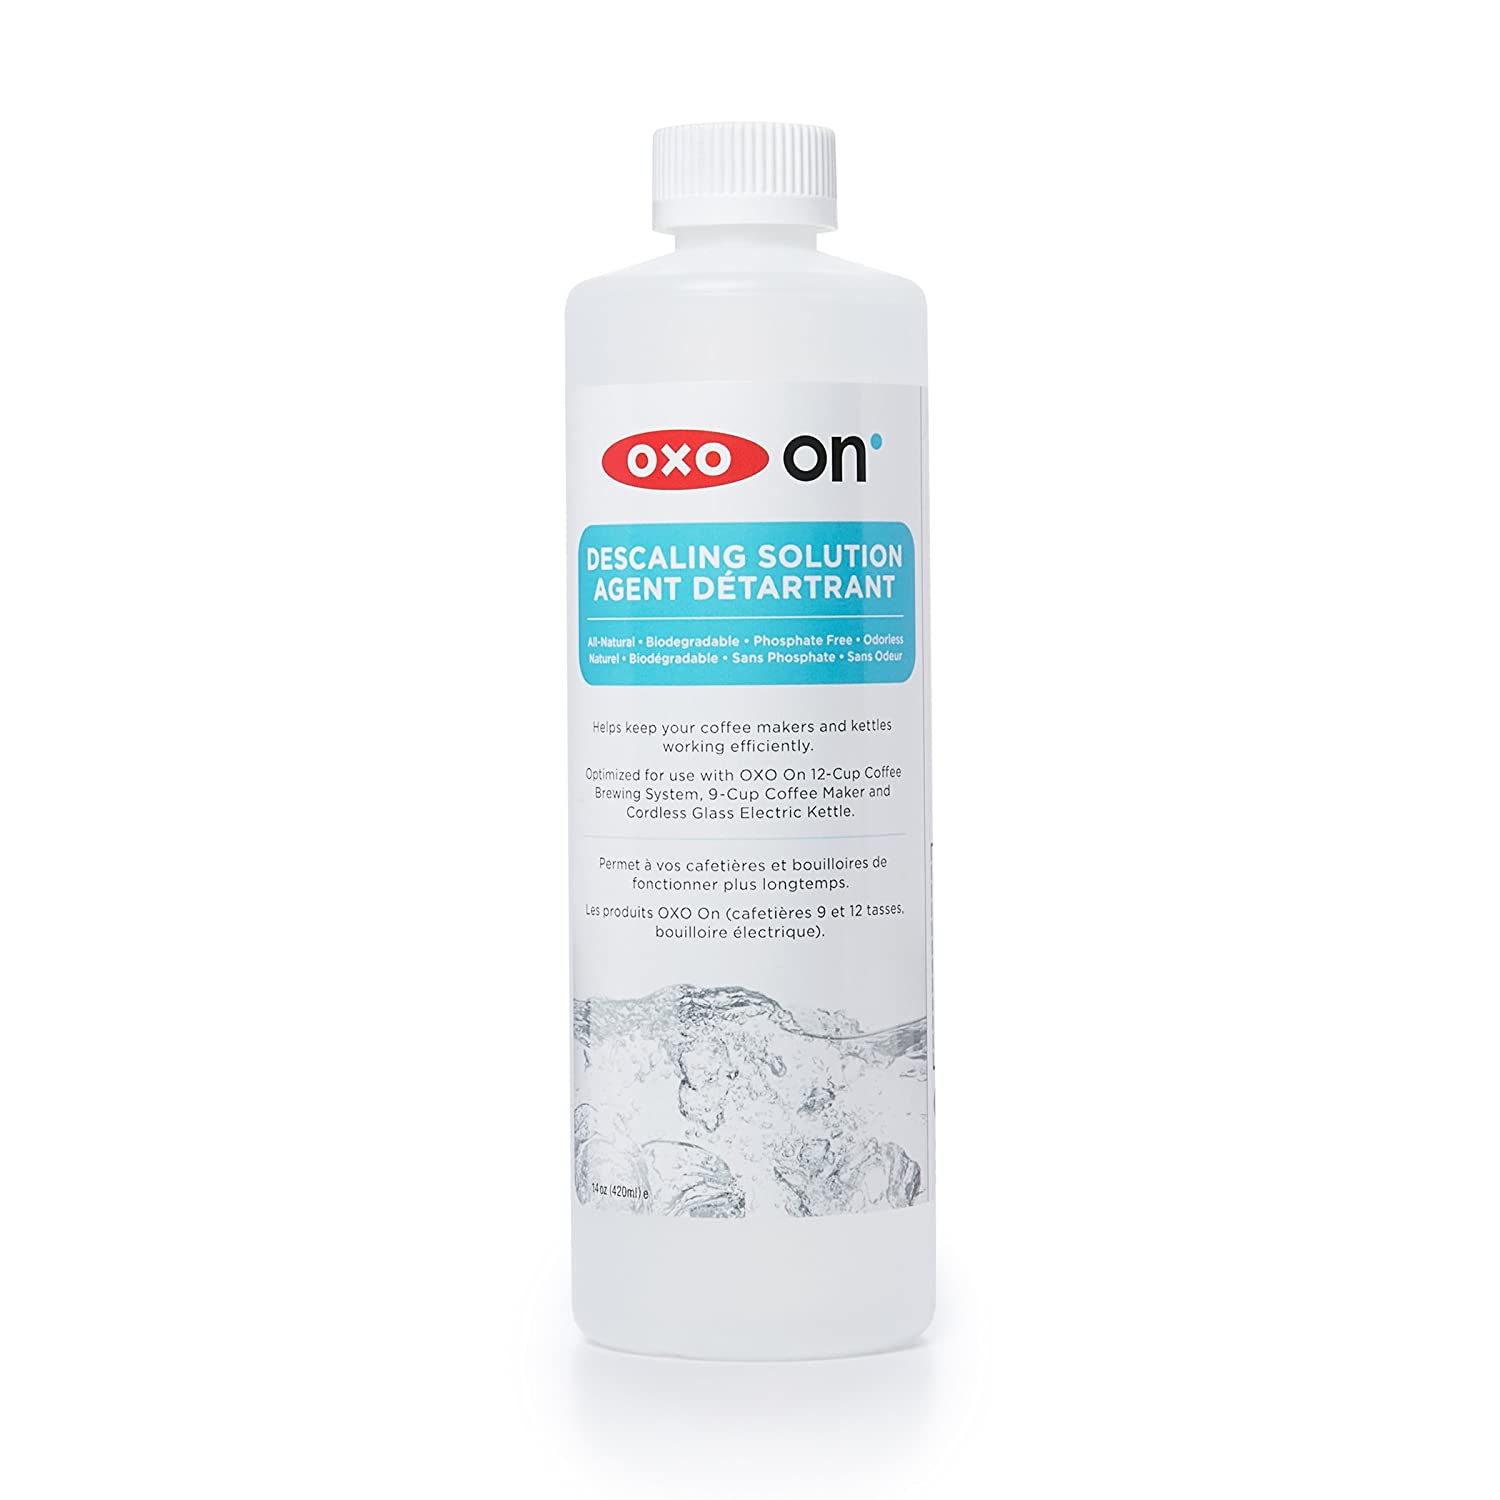 OXO All-Natural Phosphate-Free Descaling Solution